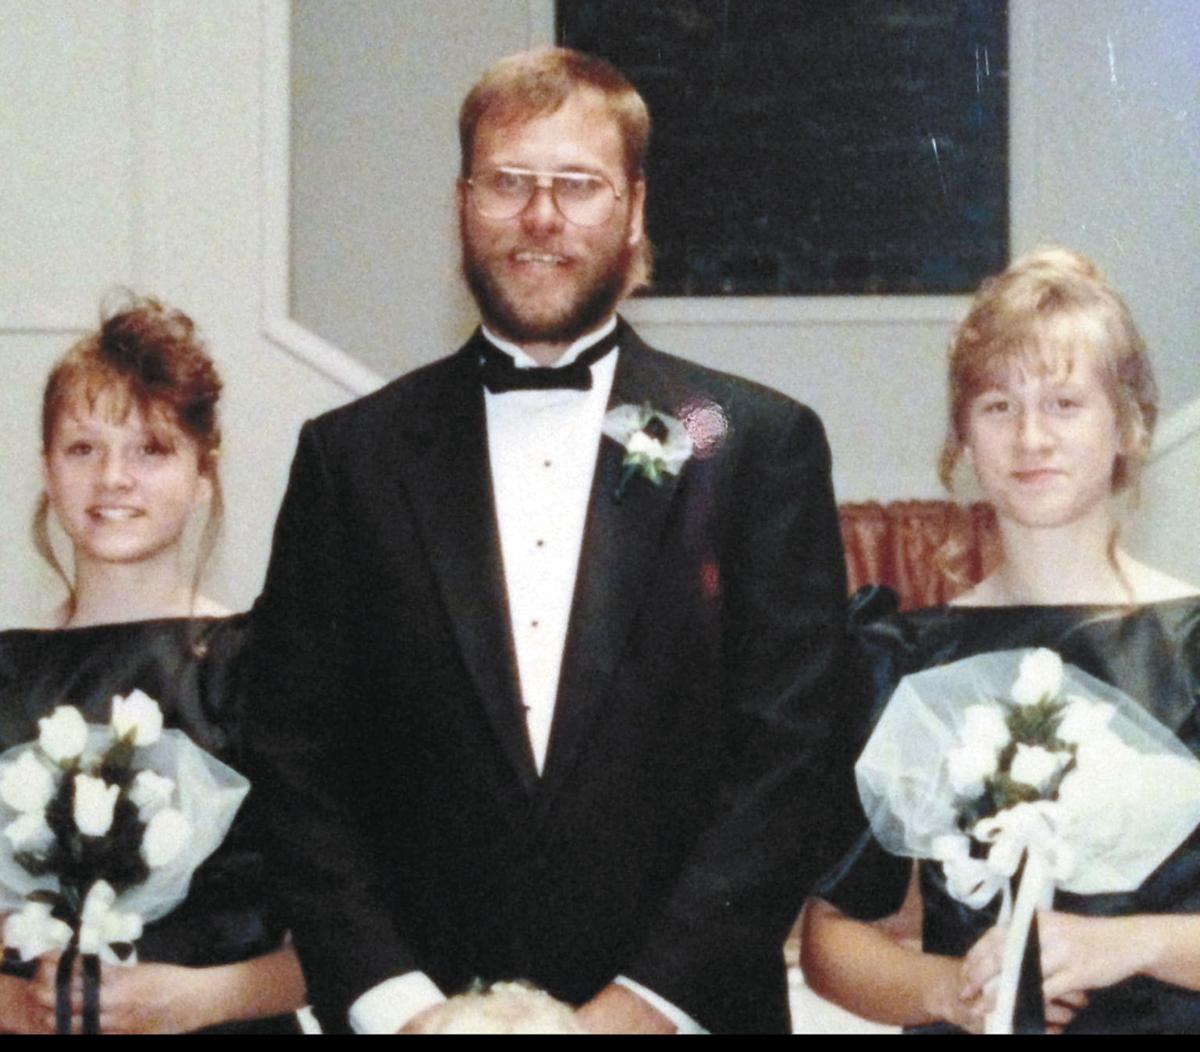 Family fears murder in unsolved 1993 case